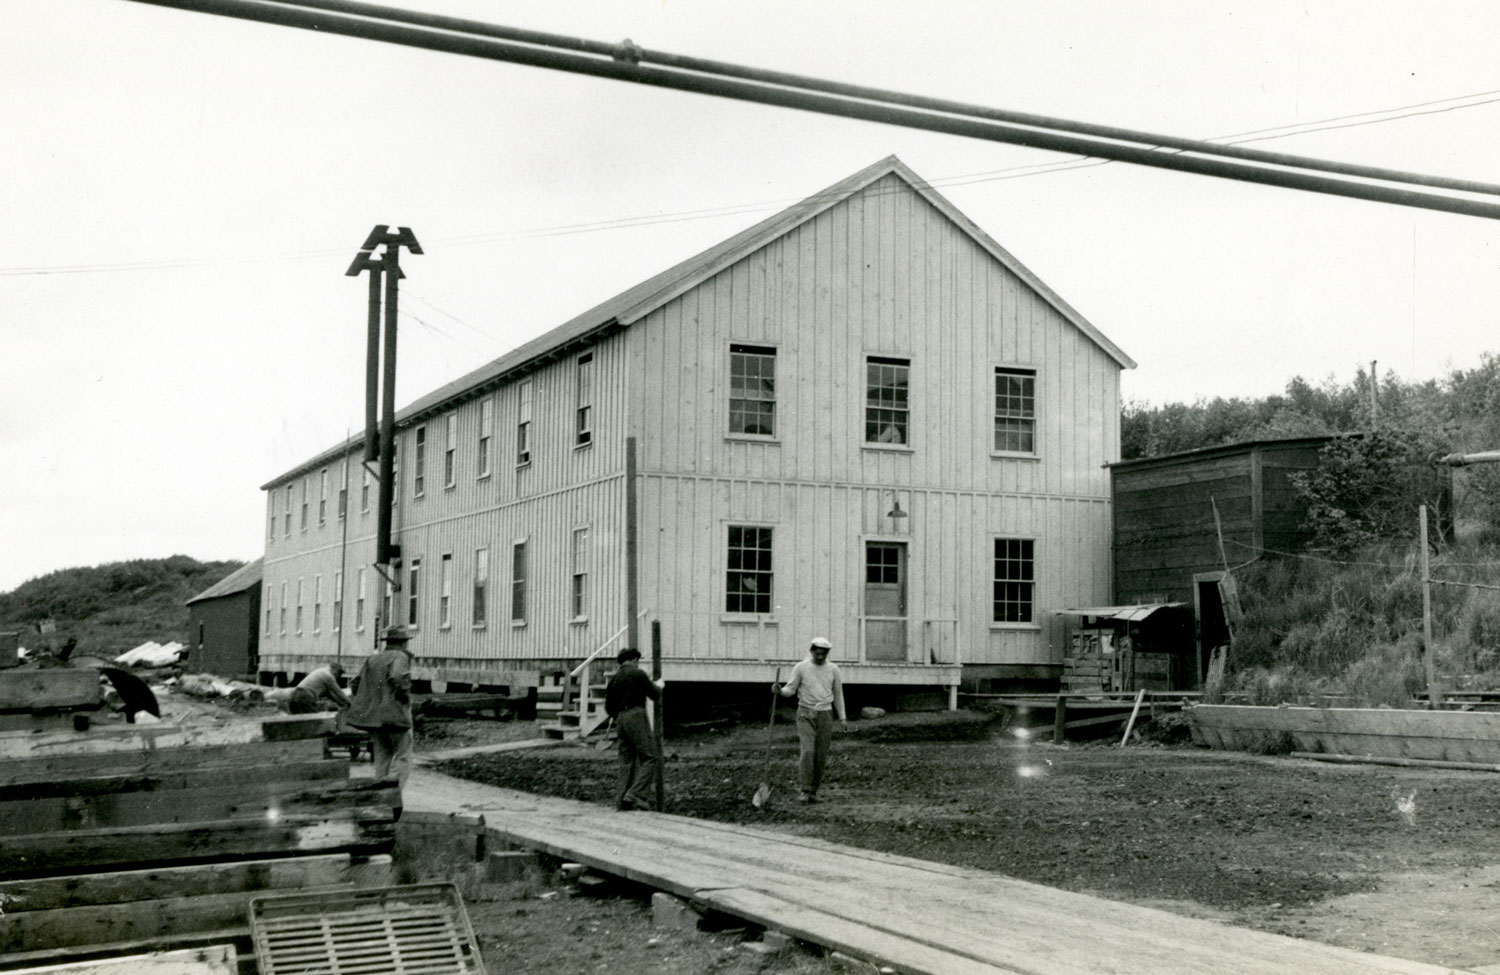 The Cannery Workers Bunkhouse when it was newly constructed. (Photo courtesy of the Center for Pacific Northwest Studies, Western Libraries Heritage Resources of Western Washington University)